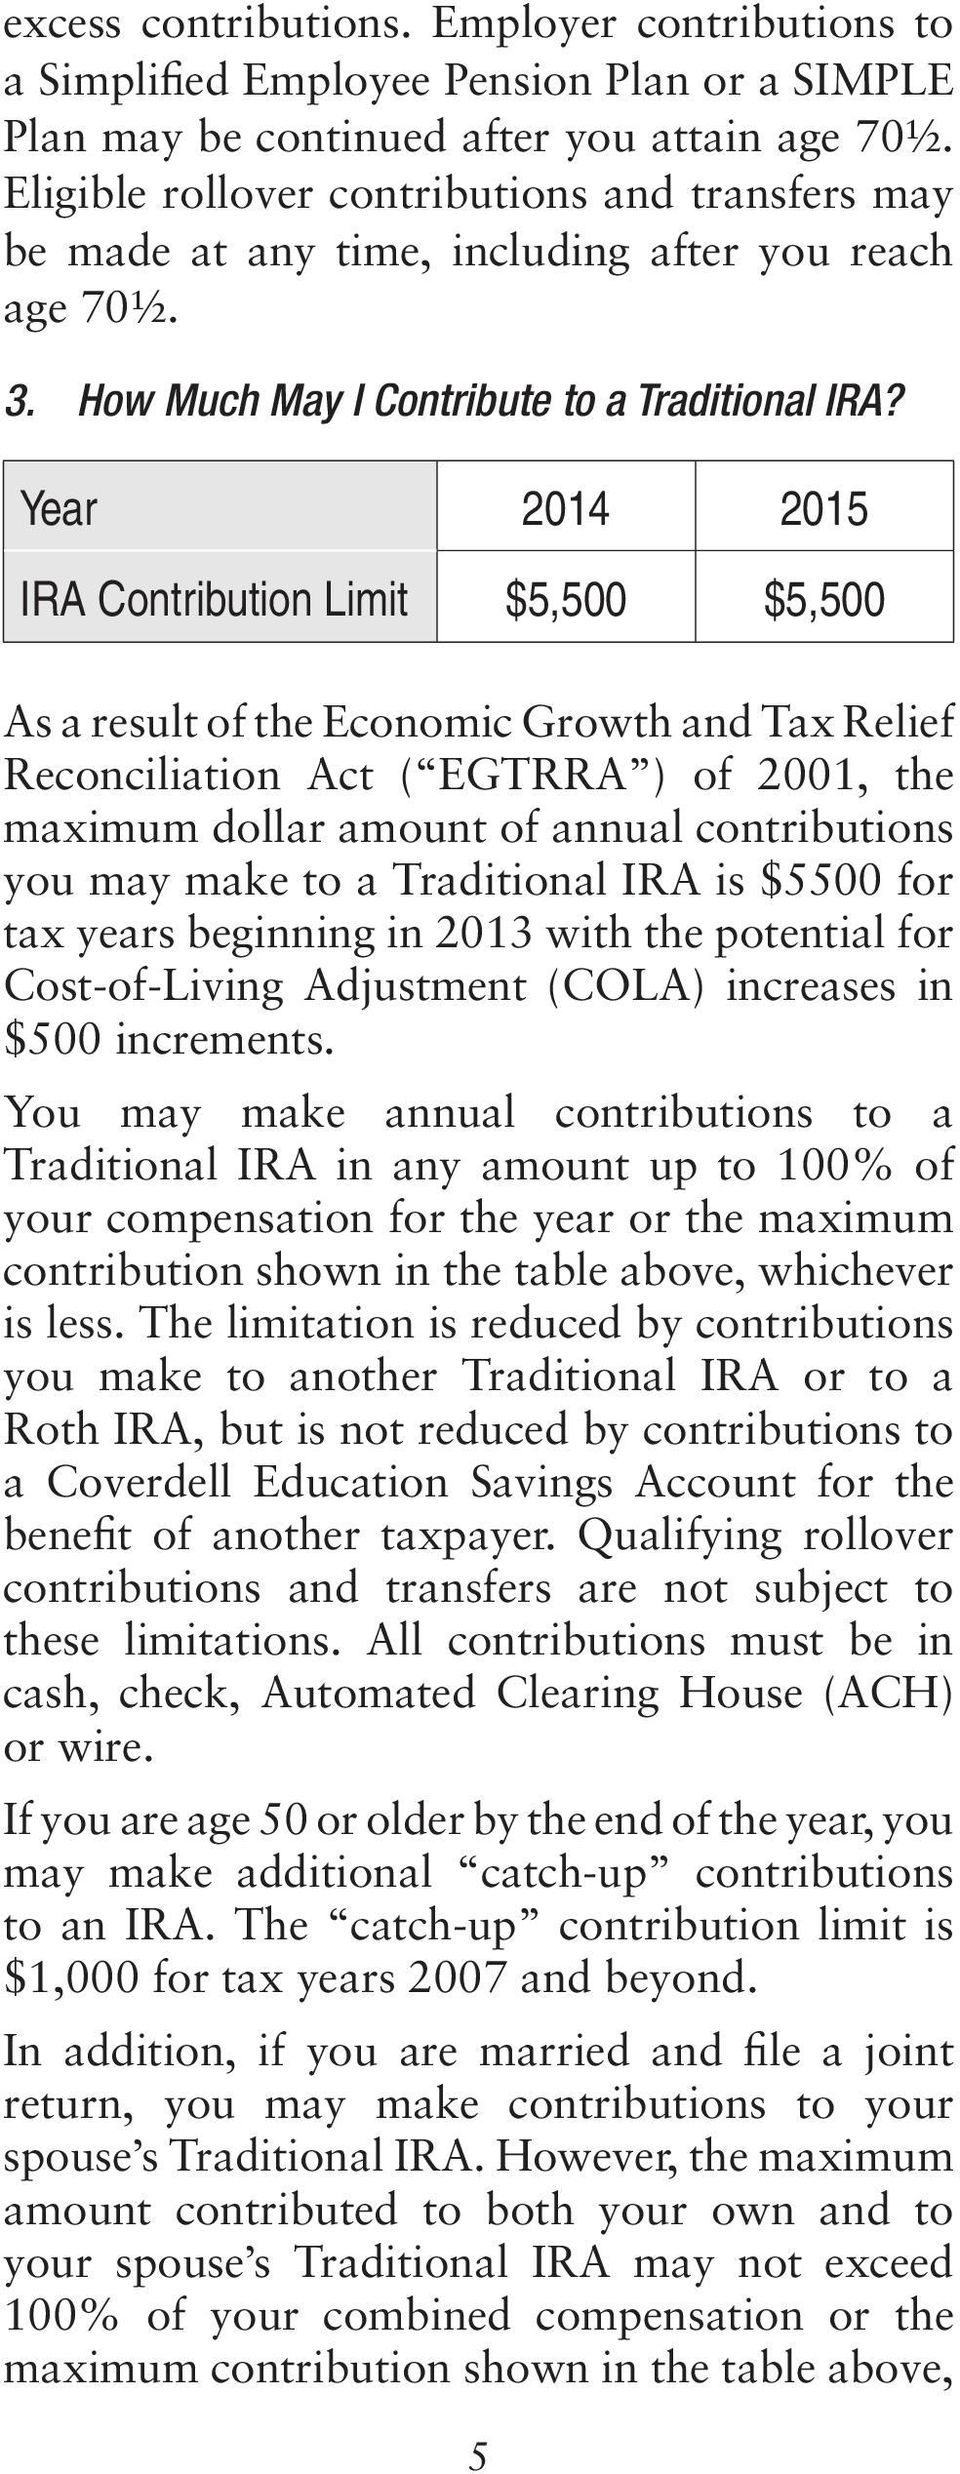 Year 2014 2015 IRA Contribution Limit $5,500 $5,500 As a result of the Economic Growth and Tax Relief Reconciliation Act ( EGTRRA ) of 2001, the maximum dollar amount of annual contributions you may